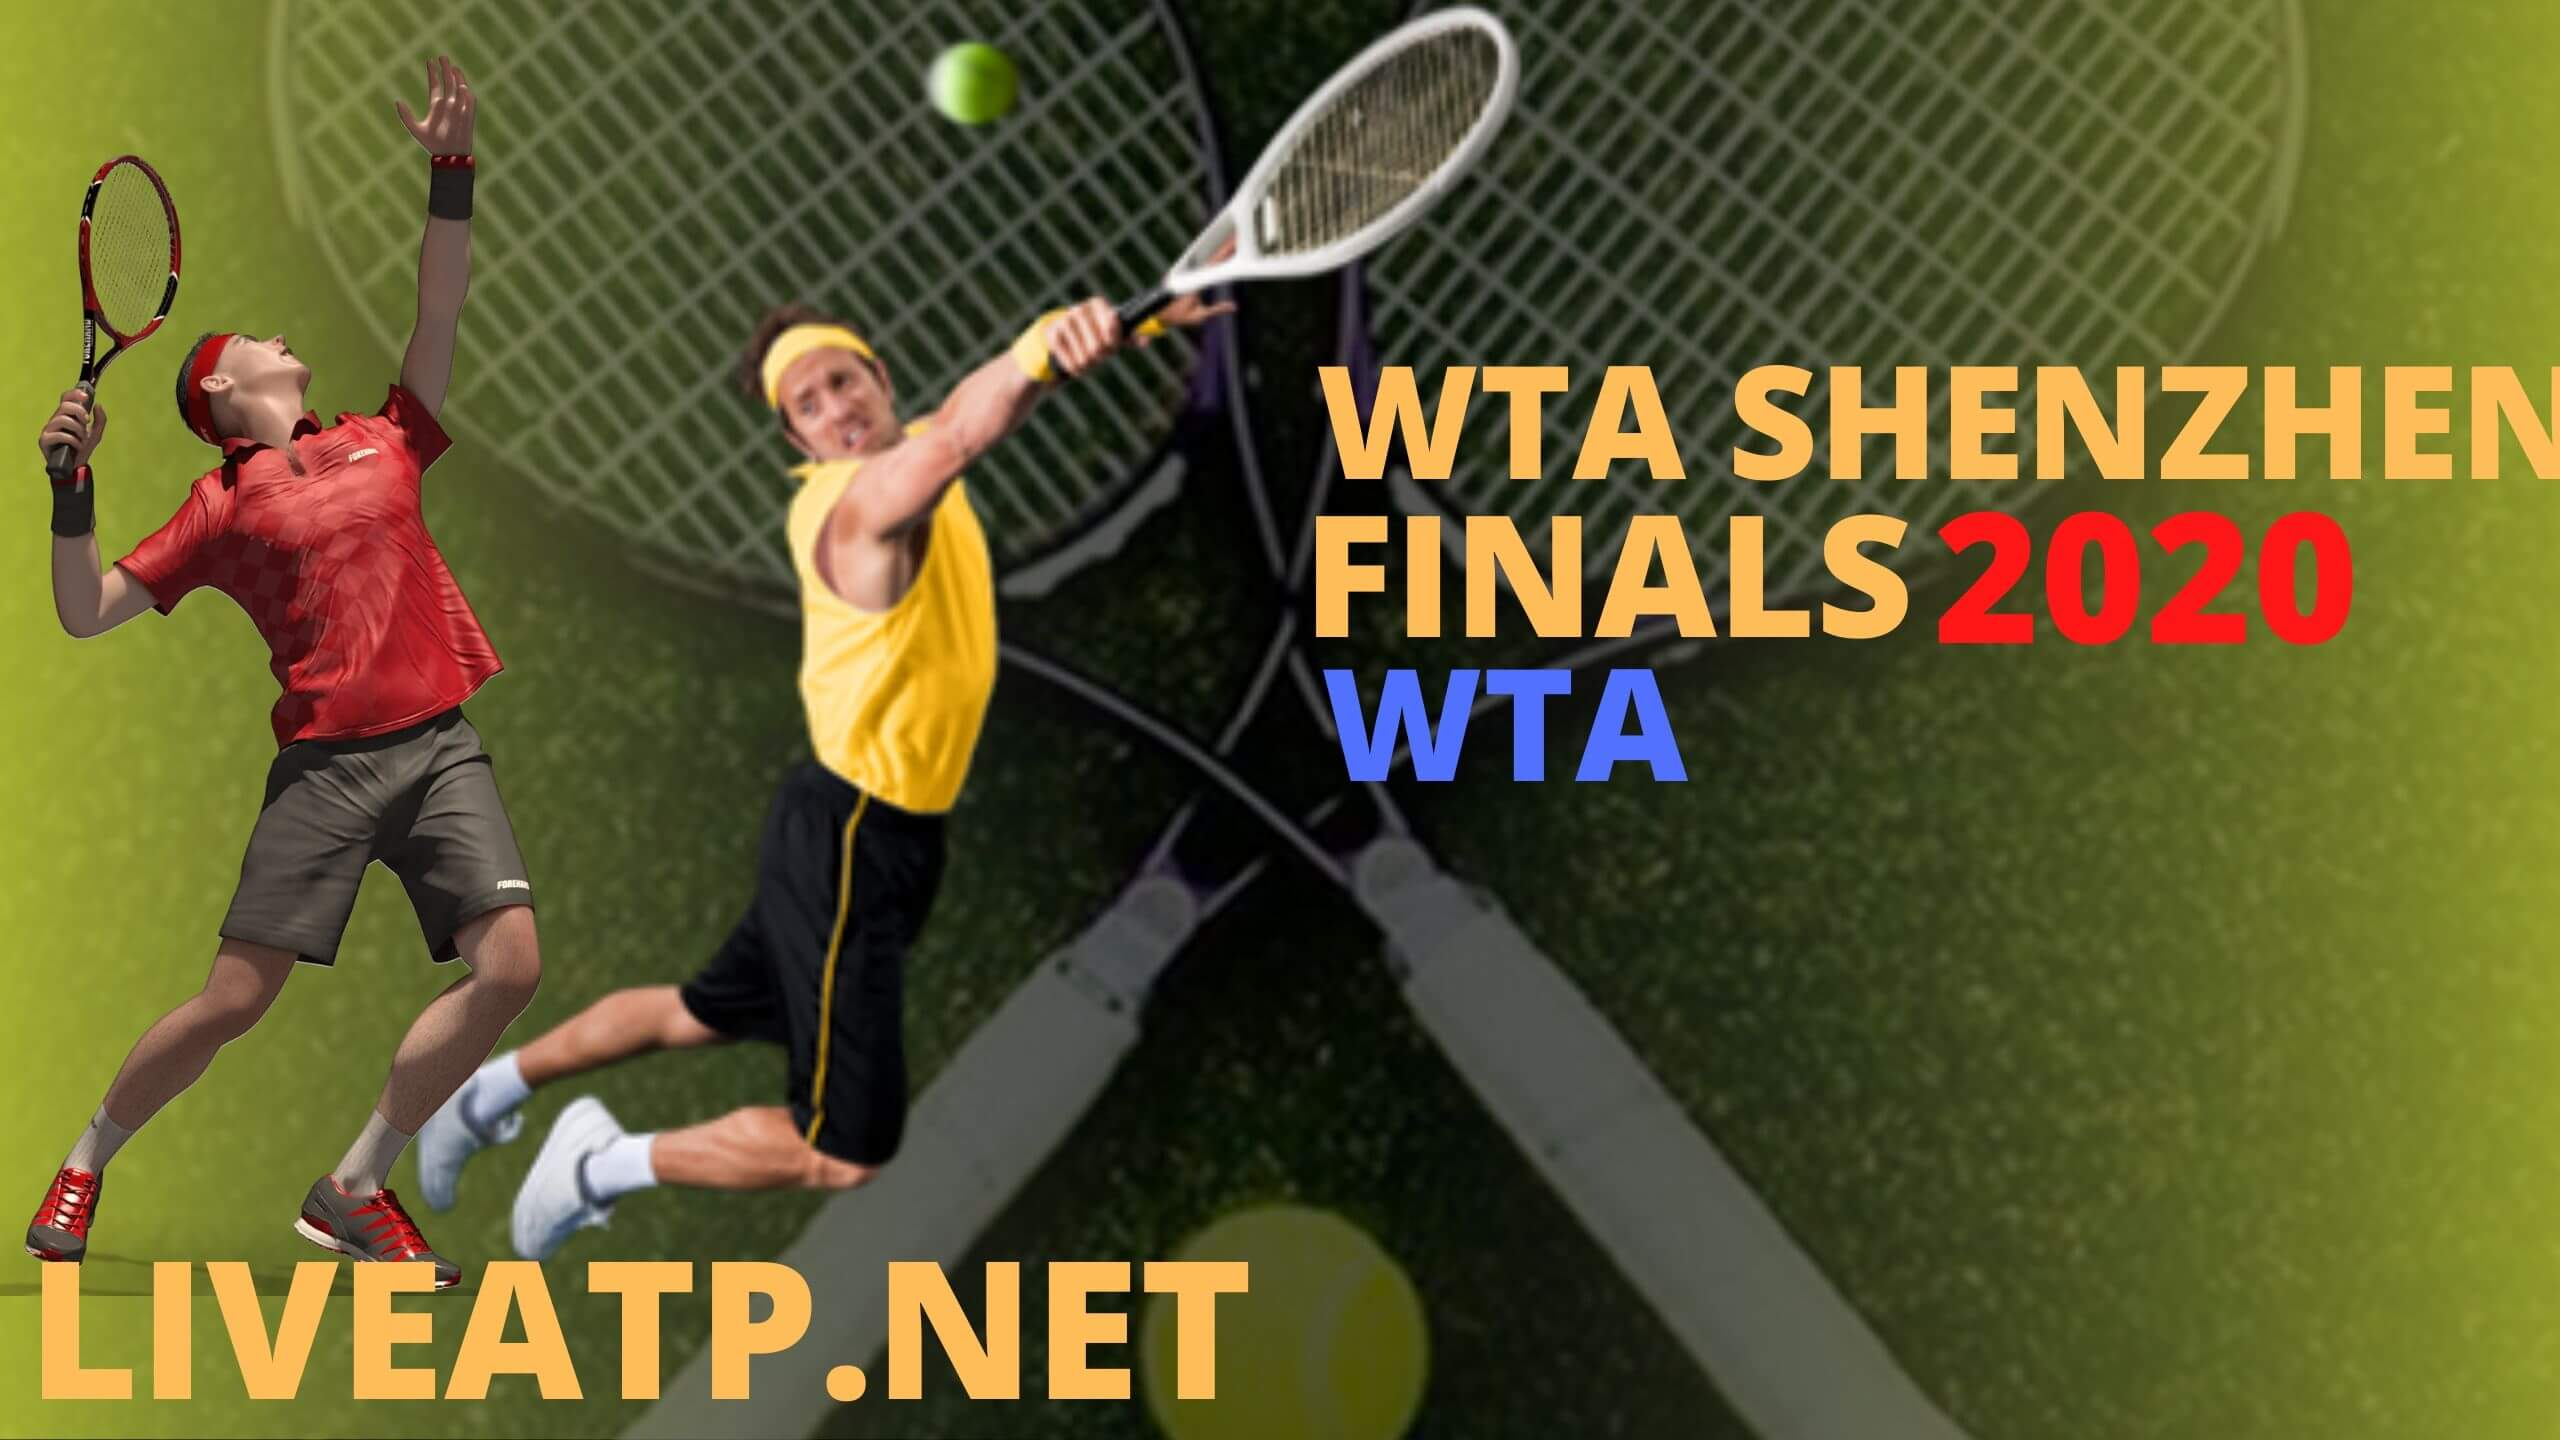 WTA Shenzhen FINALS Live Stream 2020 | Day 6